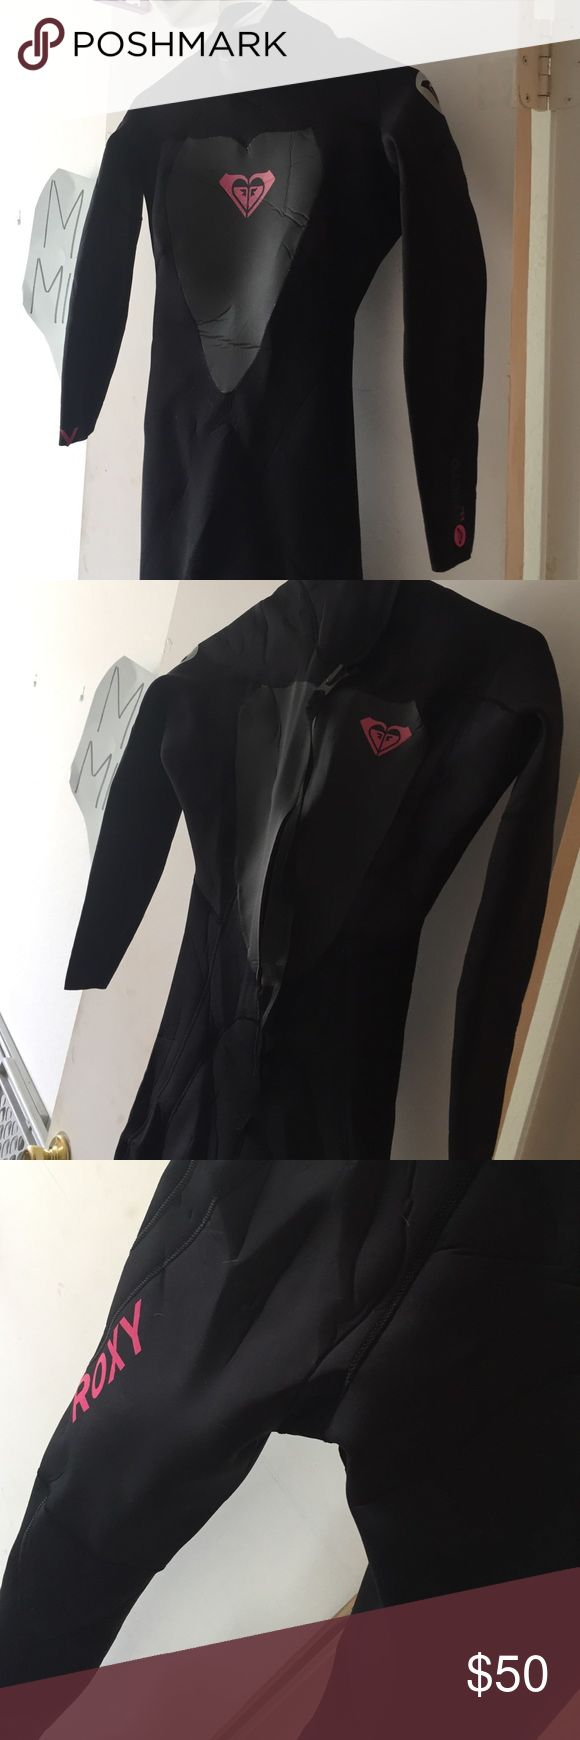 Roxy wetsuit Syncro 3/2mm. Size : 6/34. I'm 5'10 and 135 lbs and it's about one-two sizes too small for me Roxy Swim